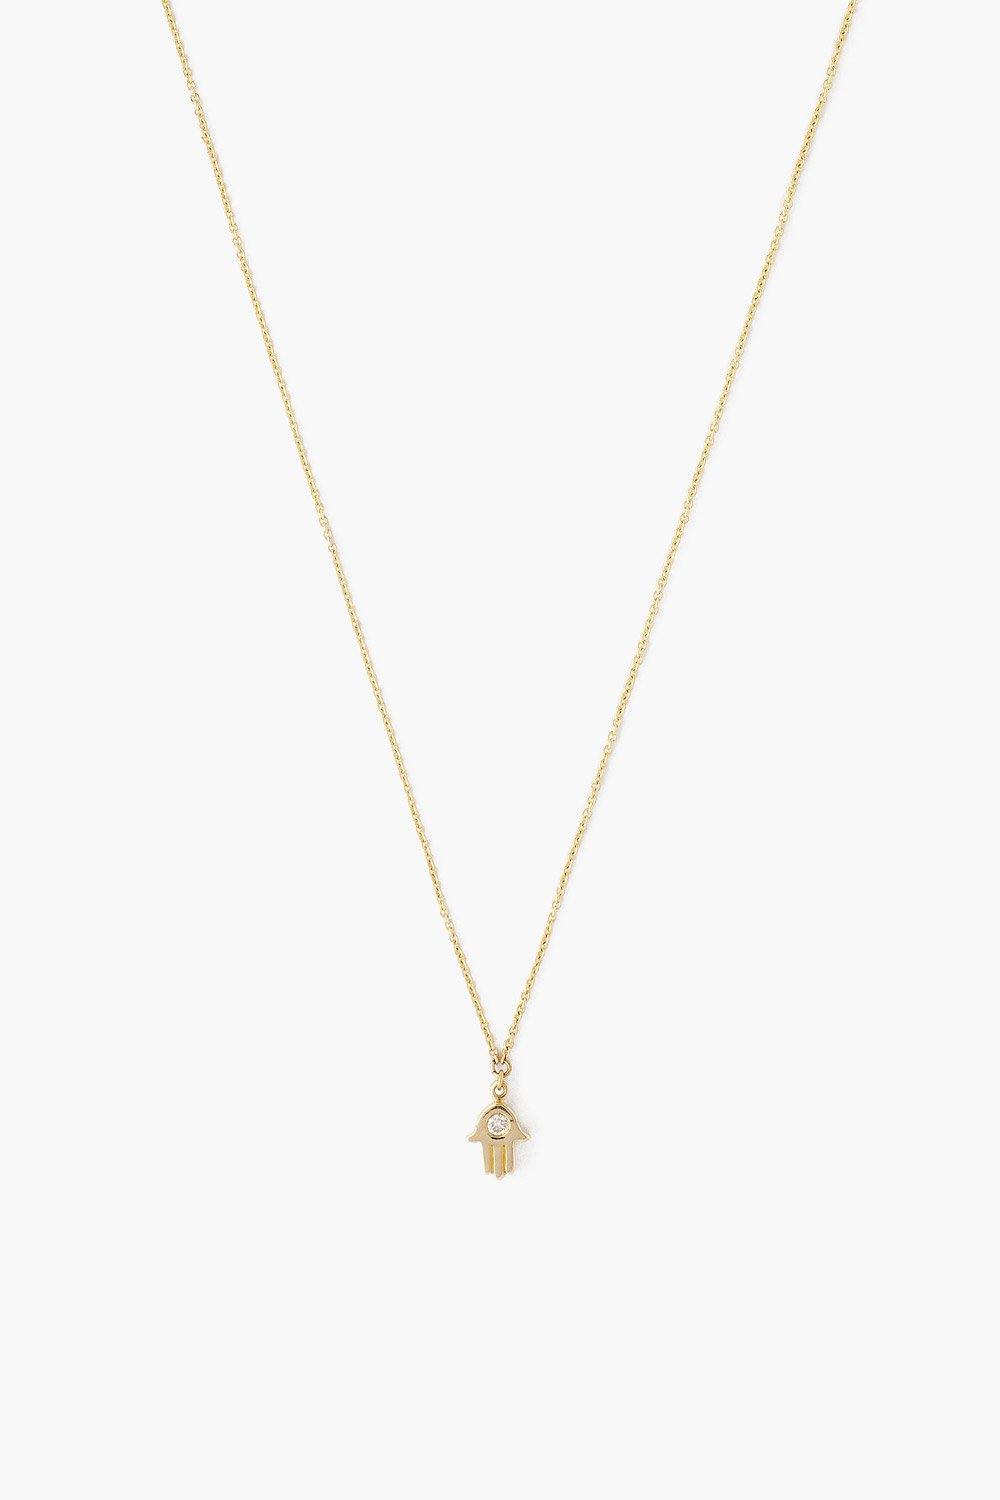 14k Gold Hamsa Necklace with Diamond Inlay